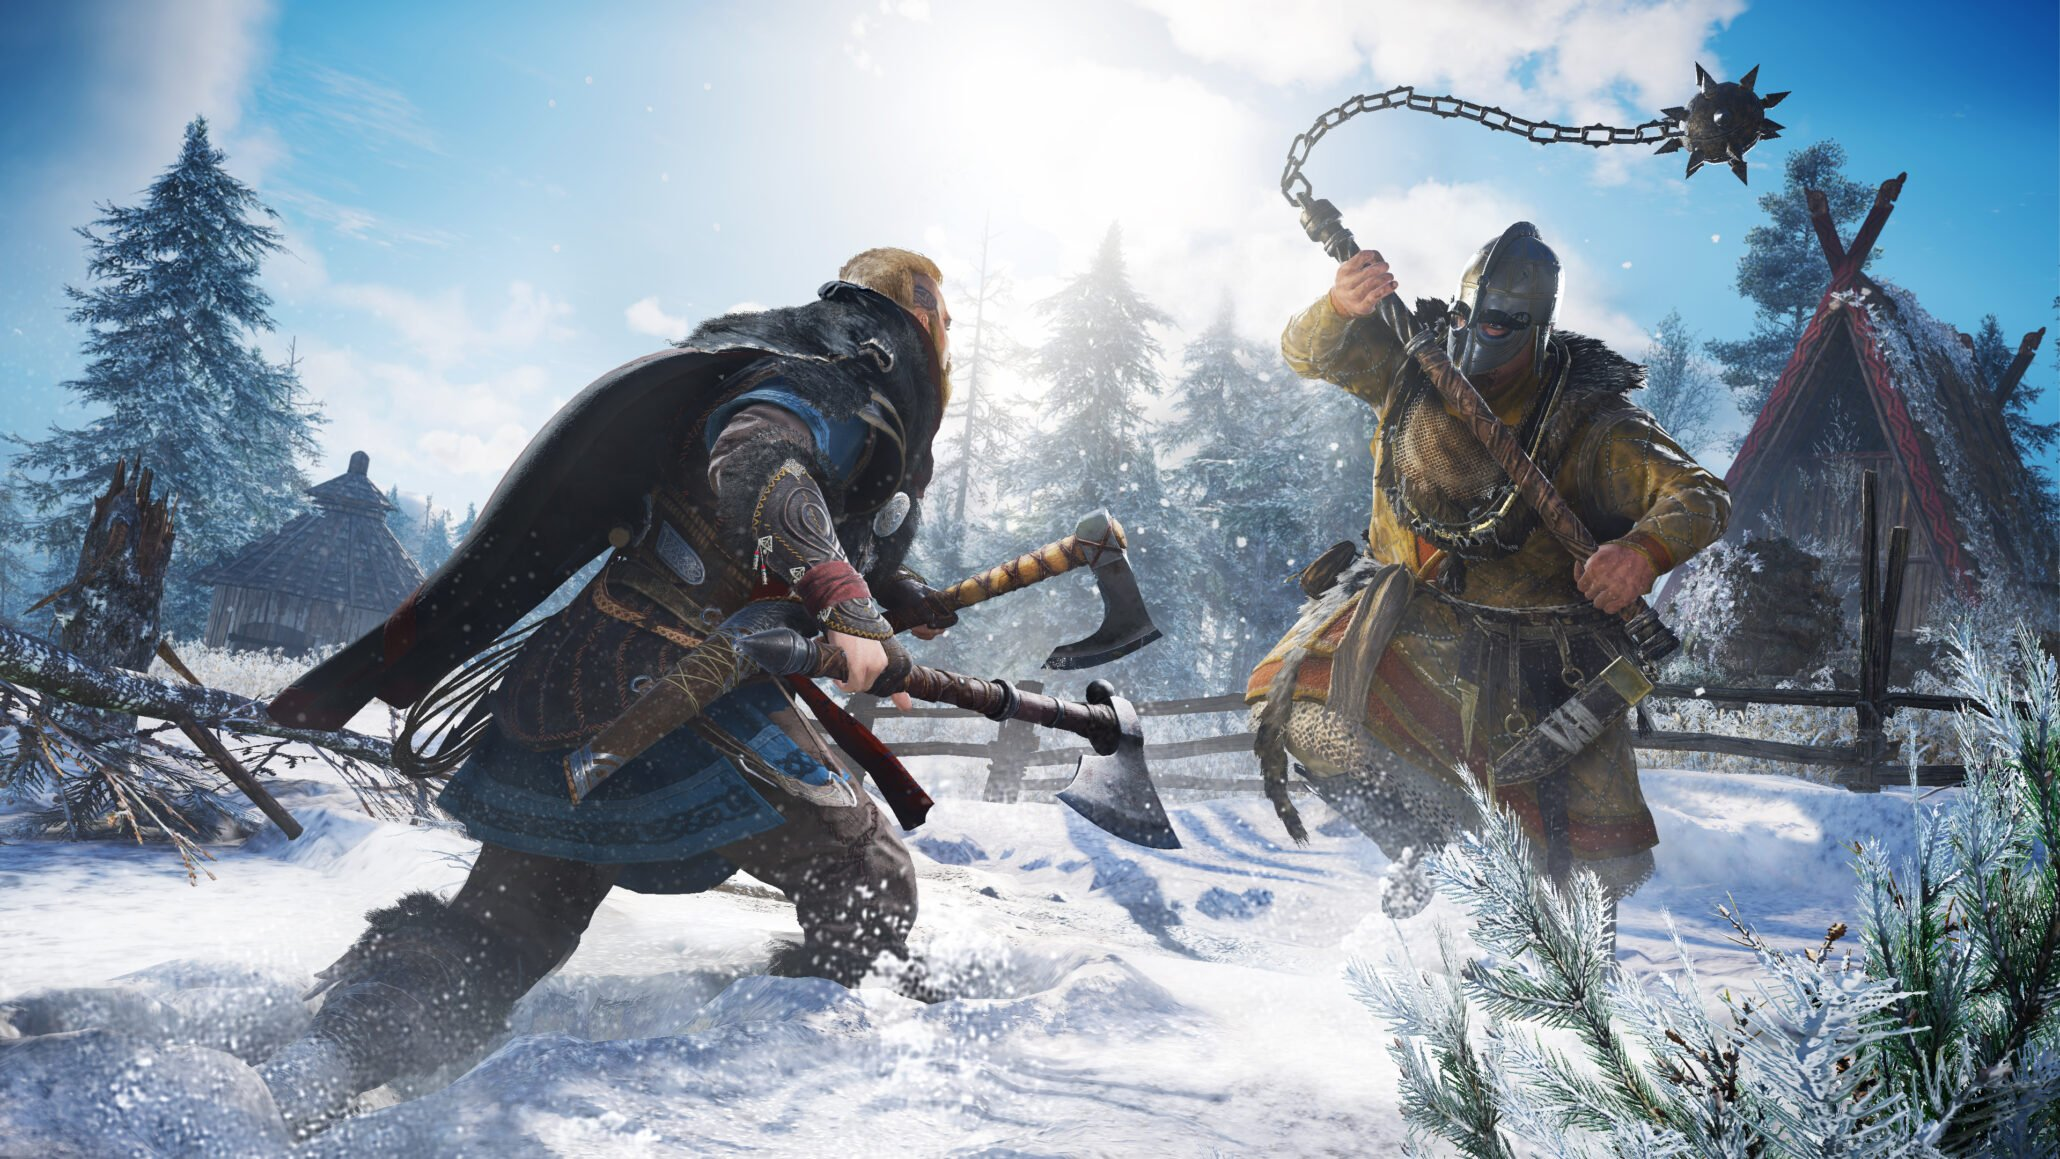 Assassin's Creed Valhalla Install Size Has Been Revealed And It Is Just As Big As Assassin's Creed Odyssey